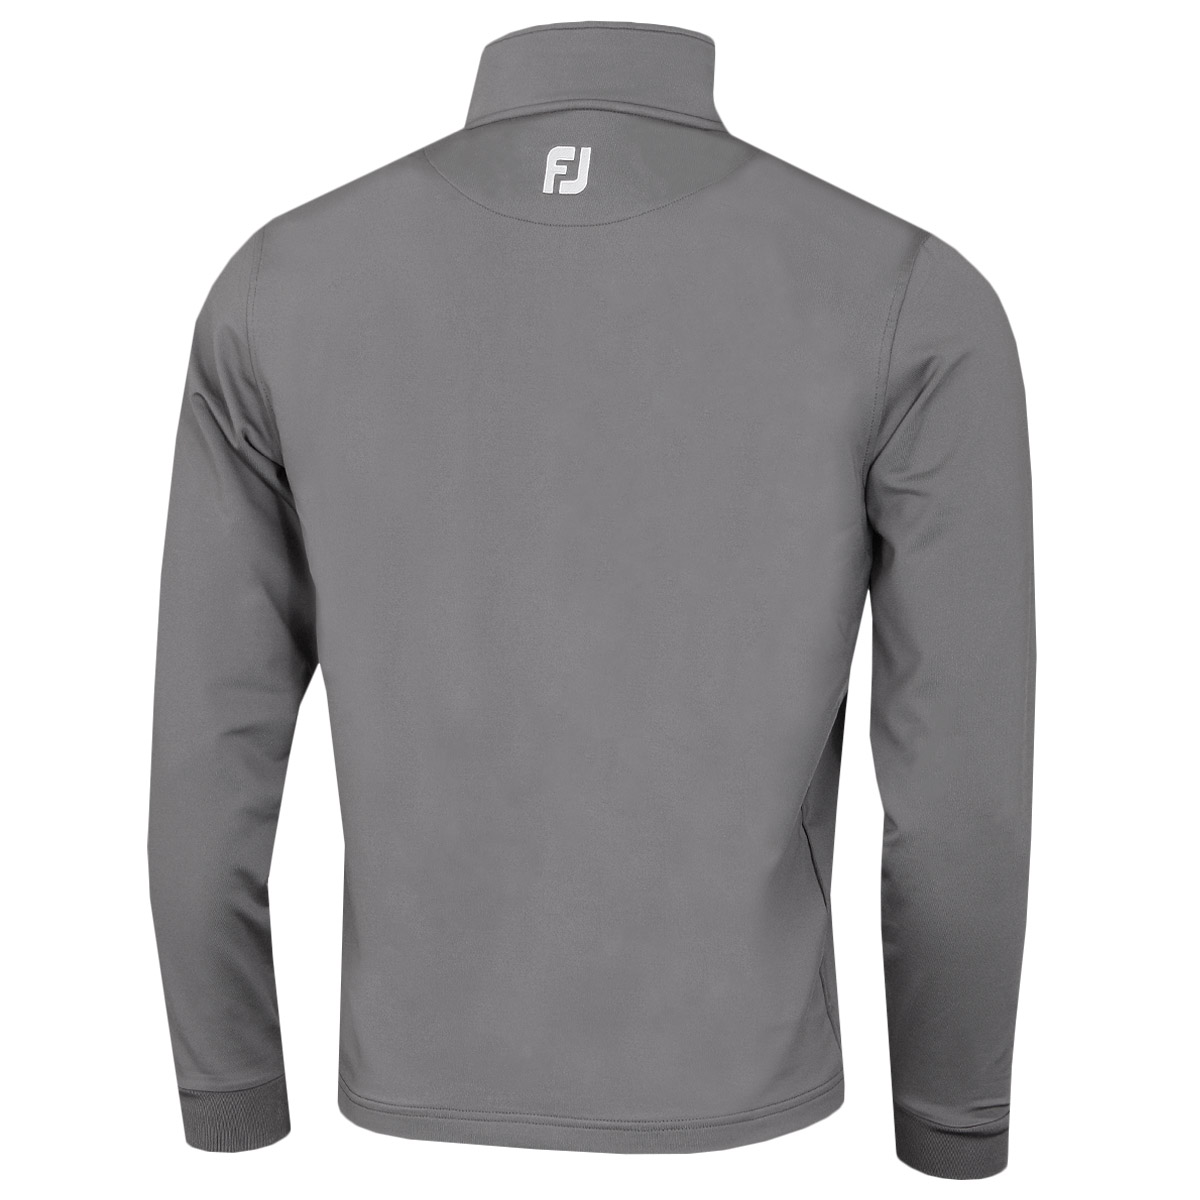 Footjoy-Mens-Jersey-Chest-Stripe-1-2-Zip-Wicking-Golf-Sweater-51-OFF-RRP thumbnail 3